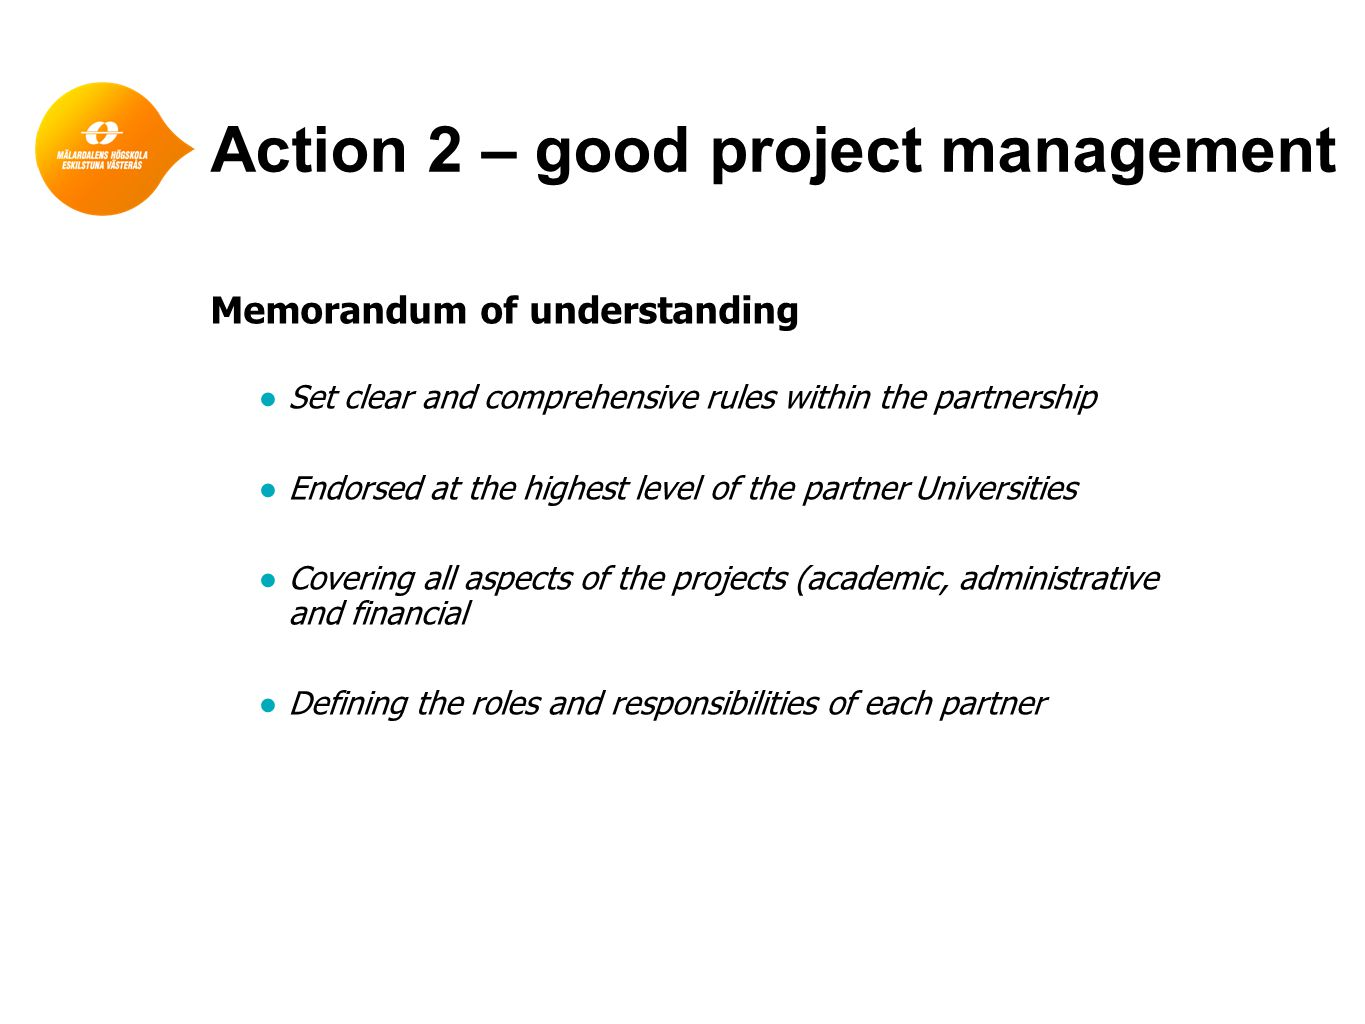 Action 2 – good project management Memorandum of understanding ●Set clear and comprehensive rules within the partnership ●Endorsed at the highest level of the partner Universities ●Covering all aspects of the projects (academic, administrative and financial ●Defining the roles and responsibilities of each partner